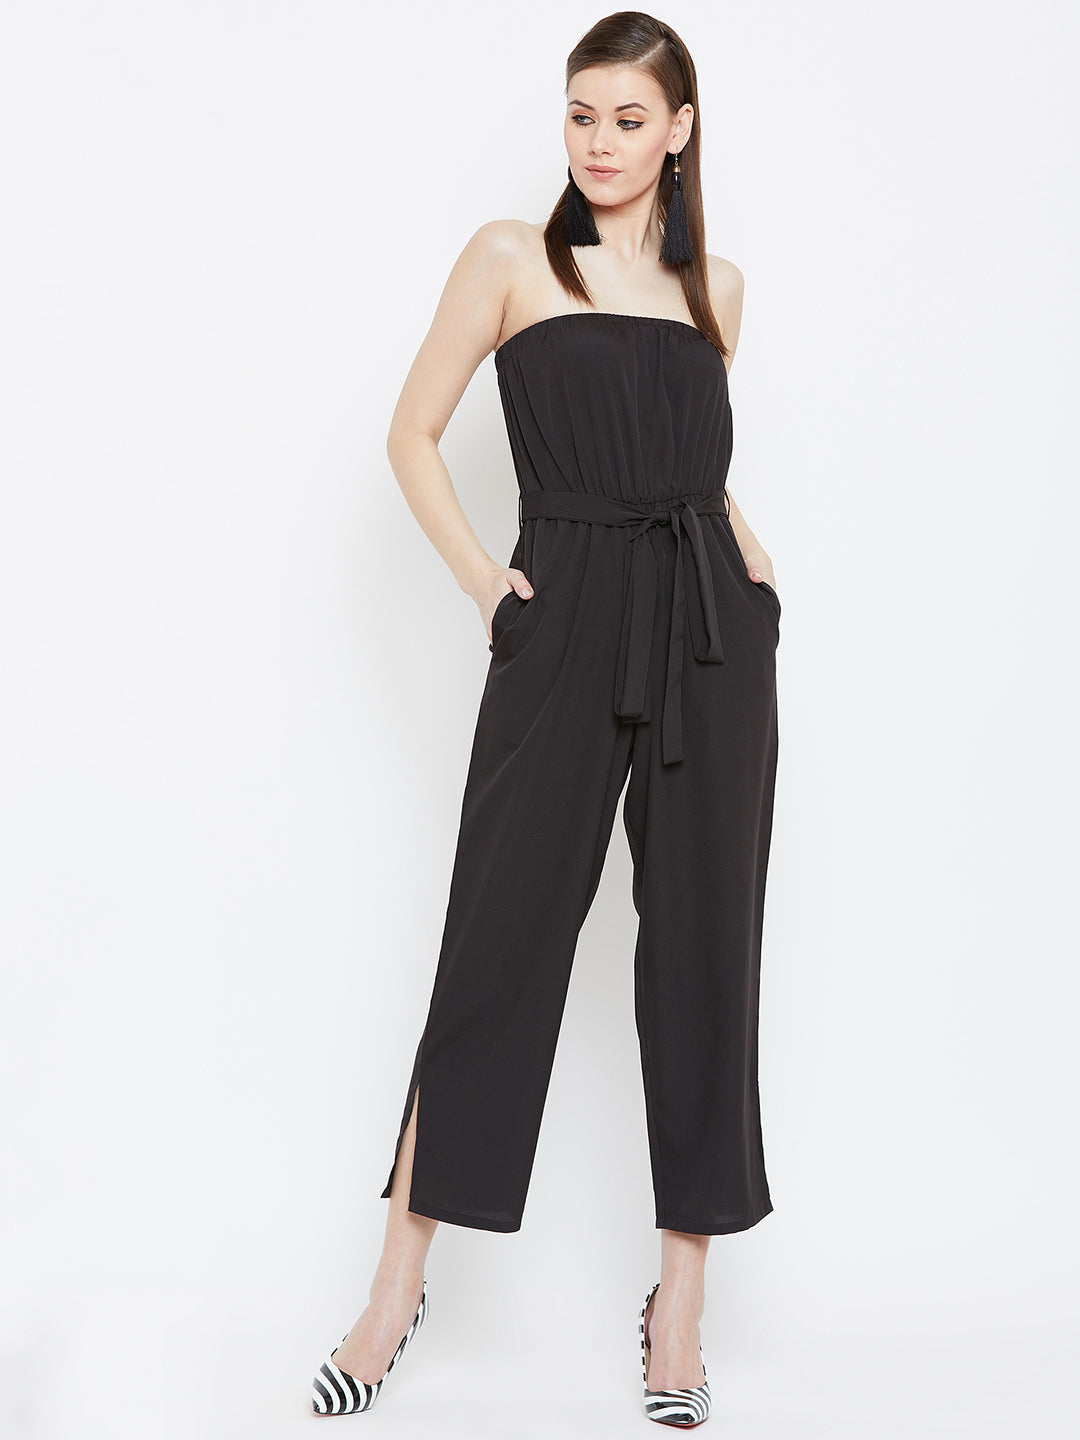 off shoulder black  jumpsuit with tie-knot waist